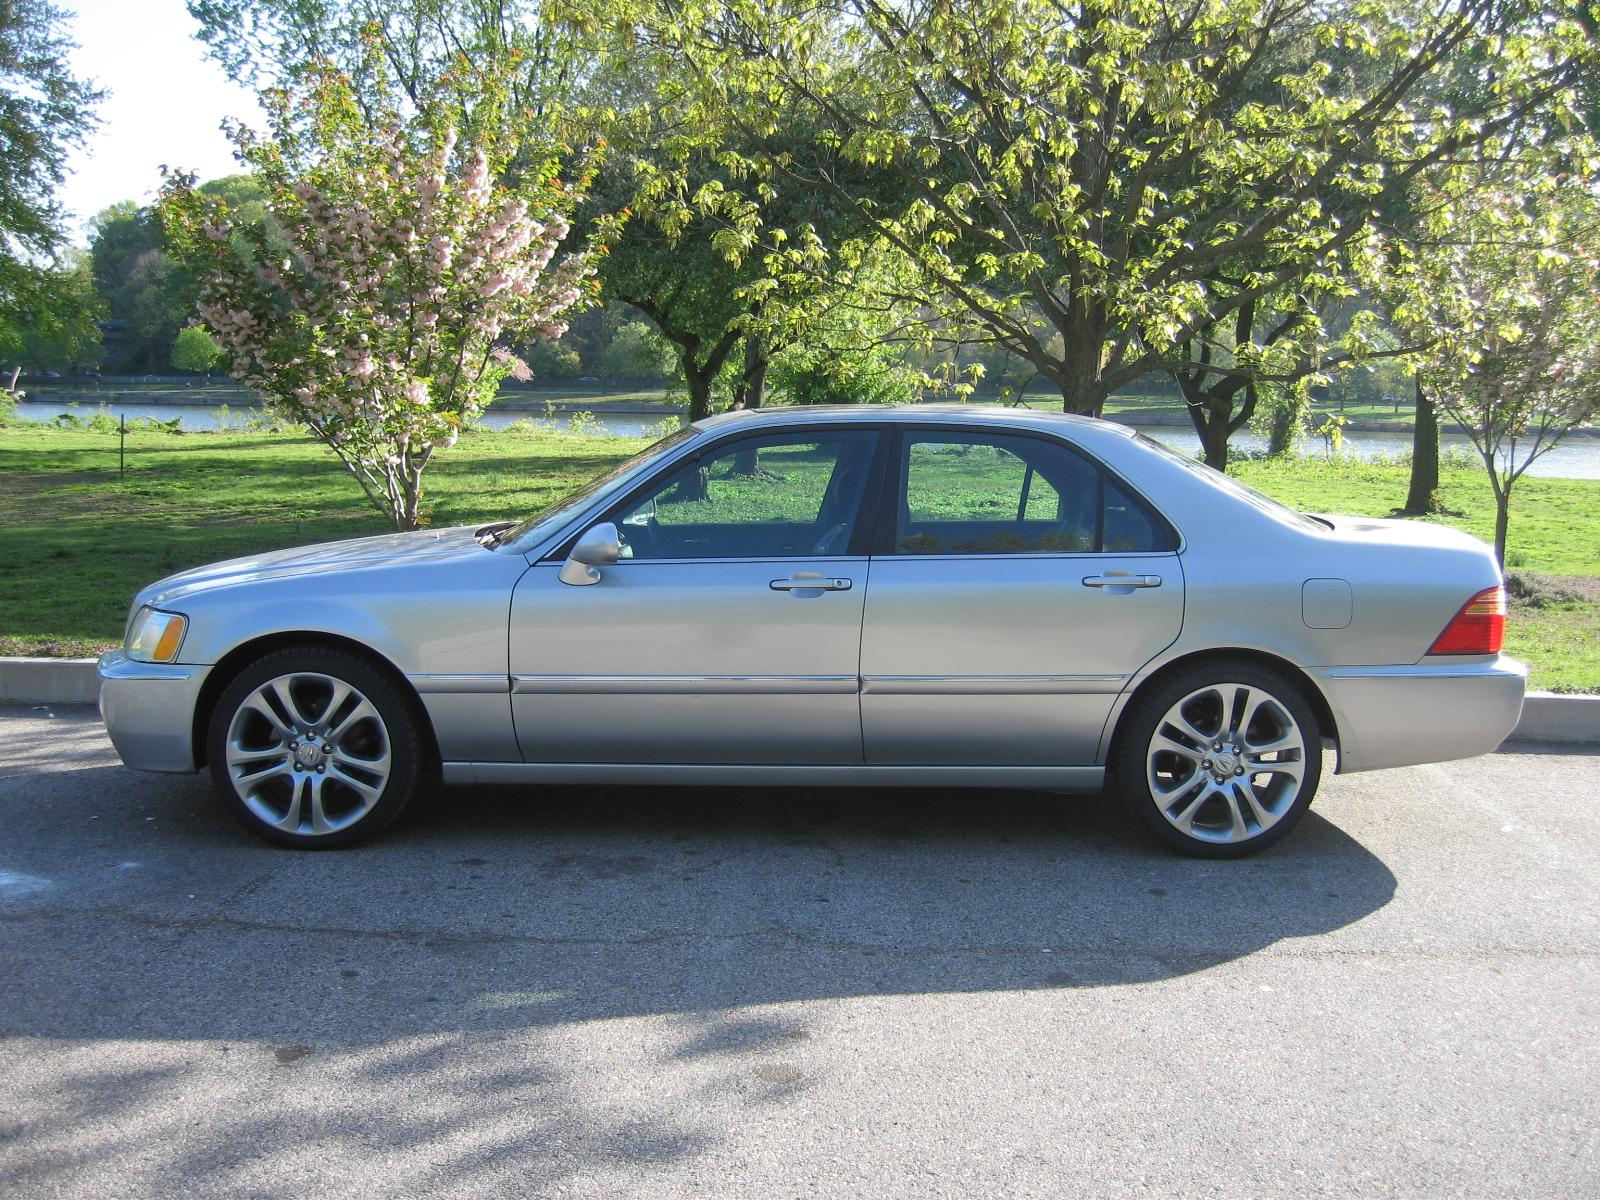 Dav215PA 2002 Acura RL3.5 Sedan 4D Specs, Photos, Modification Info